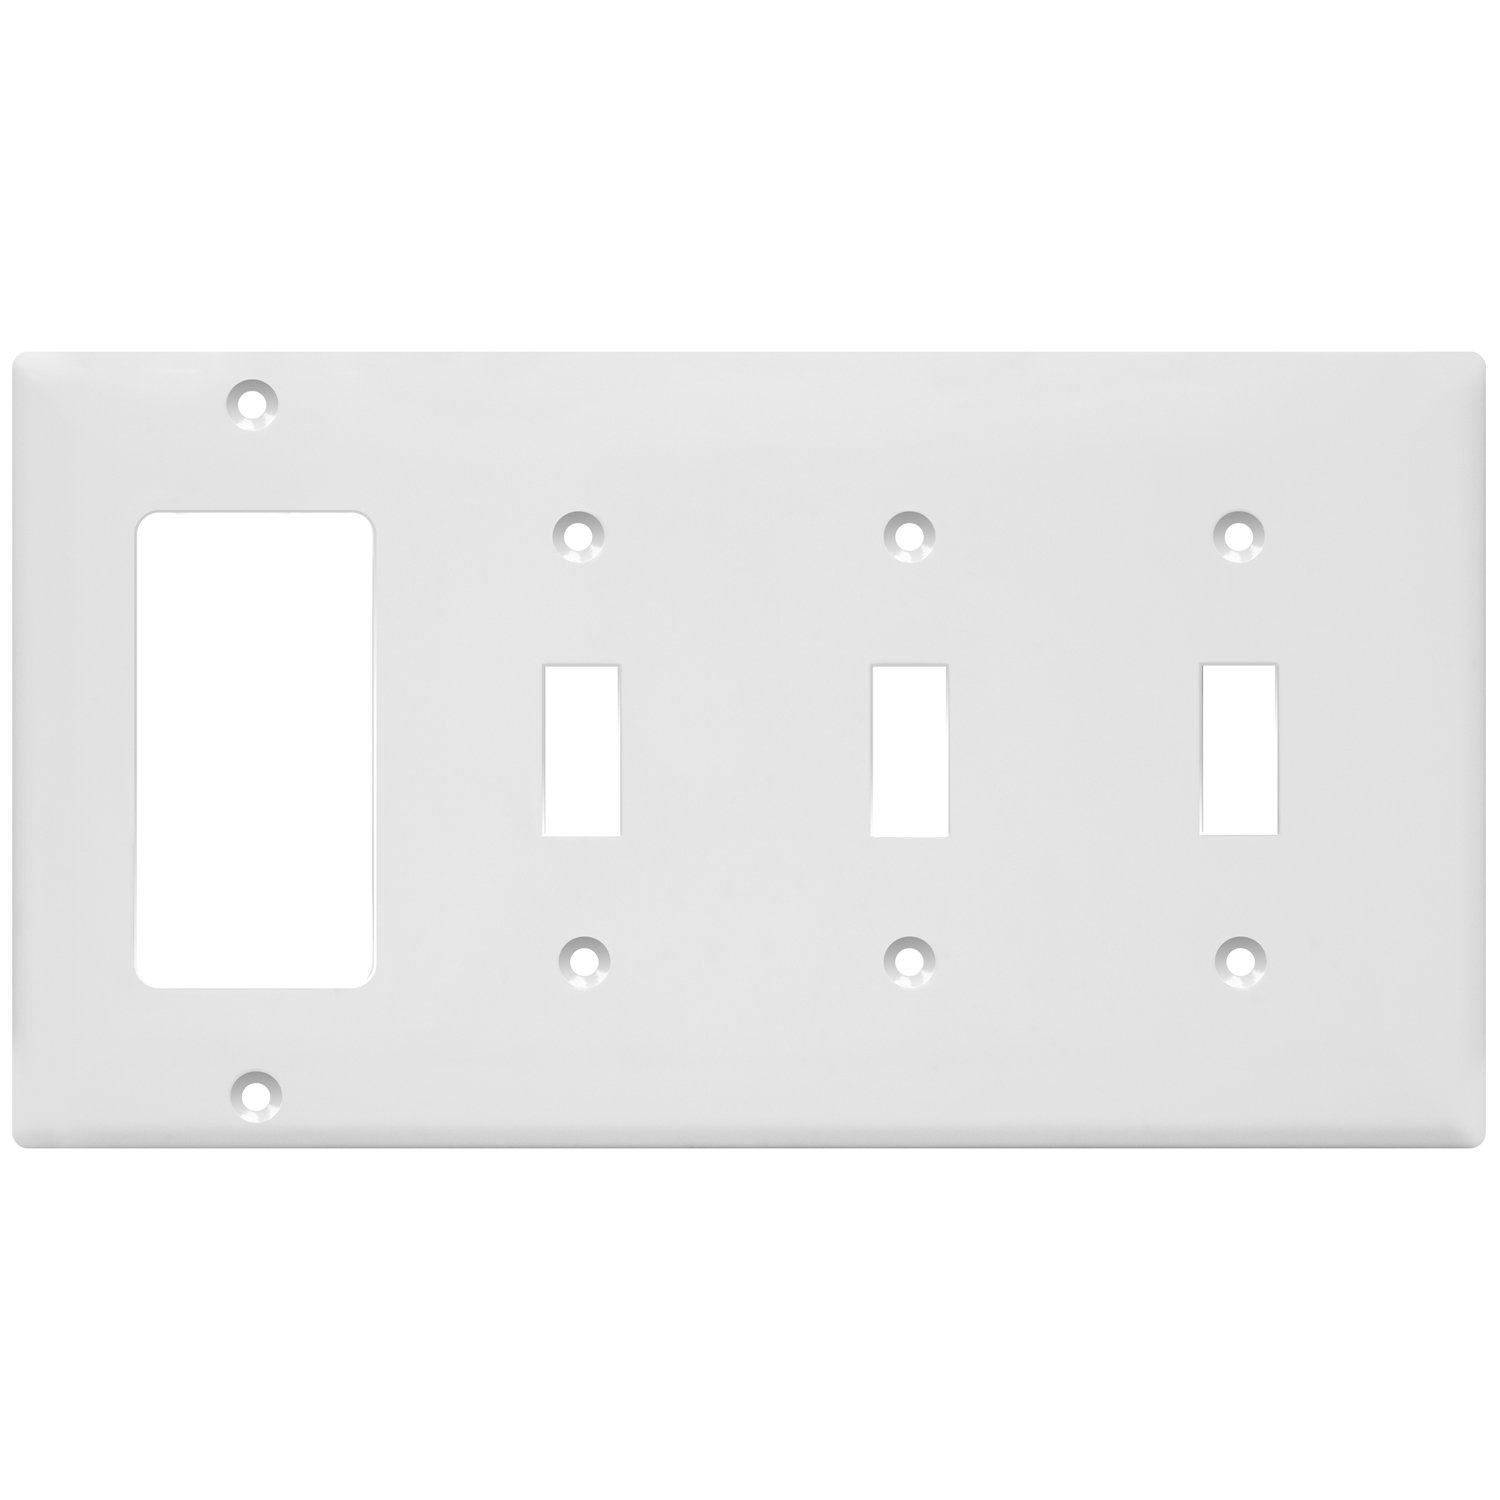 Enerlites 881331-W Combination Wall Plate(Three Toggle Switch/Single Decorator), Standard Size 4-Gang, Polycarbonate Thermoplastic, White